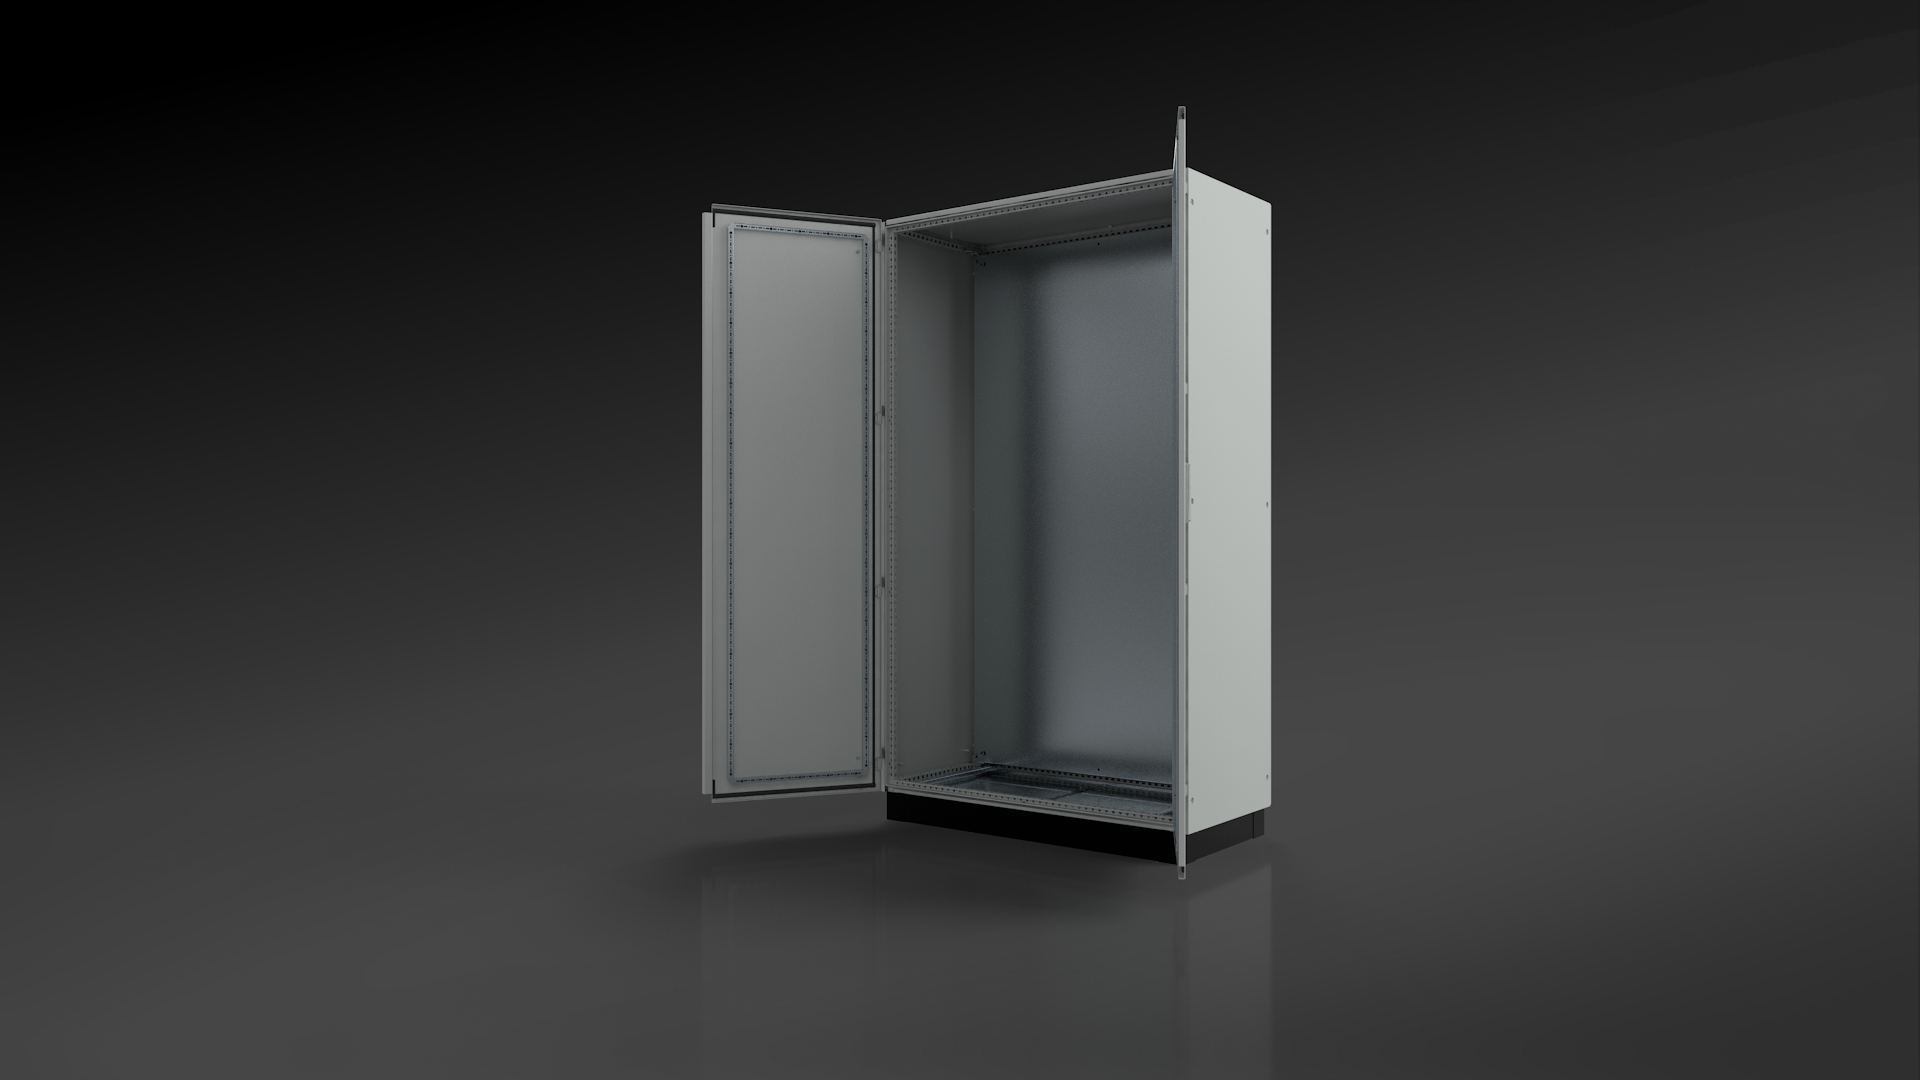 d721c718c3 The opportunity to change the opening direction of main and adjacent doors  on double-door enclosures according to needs, creates added flexibility  when ...